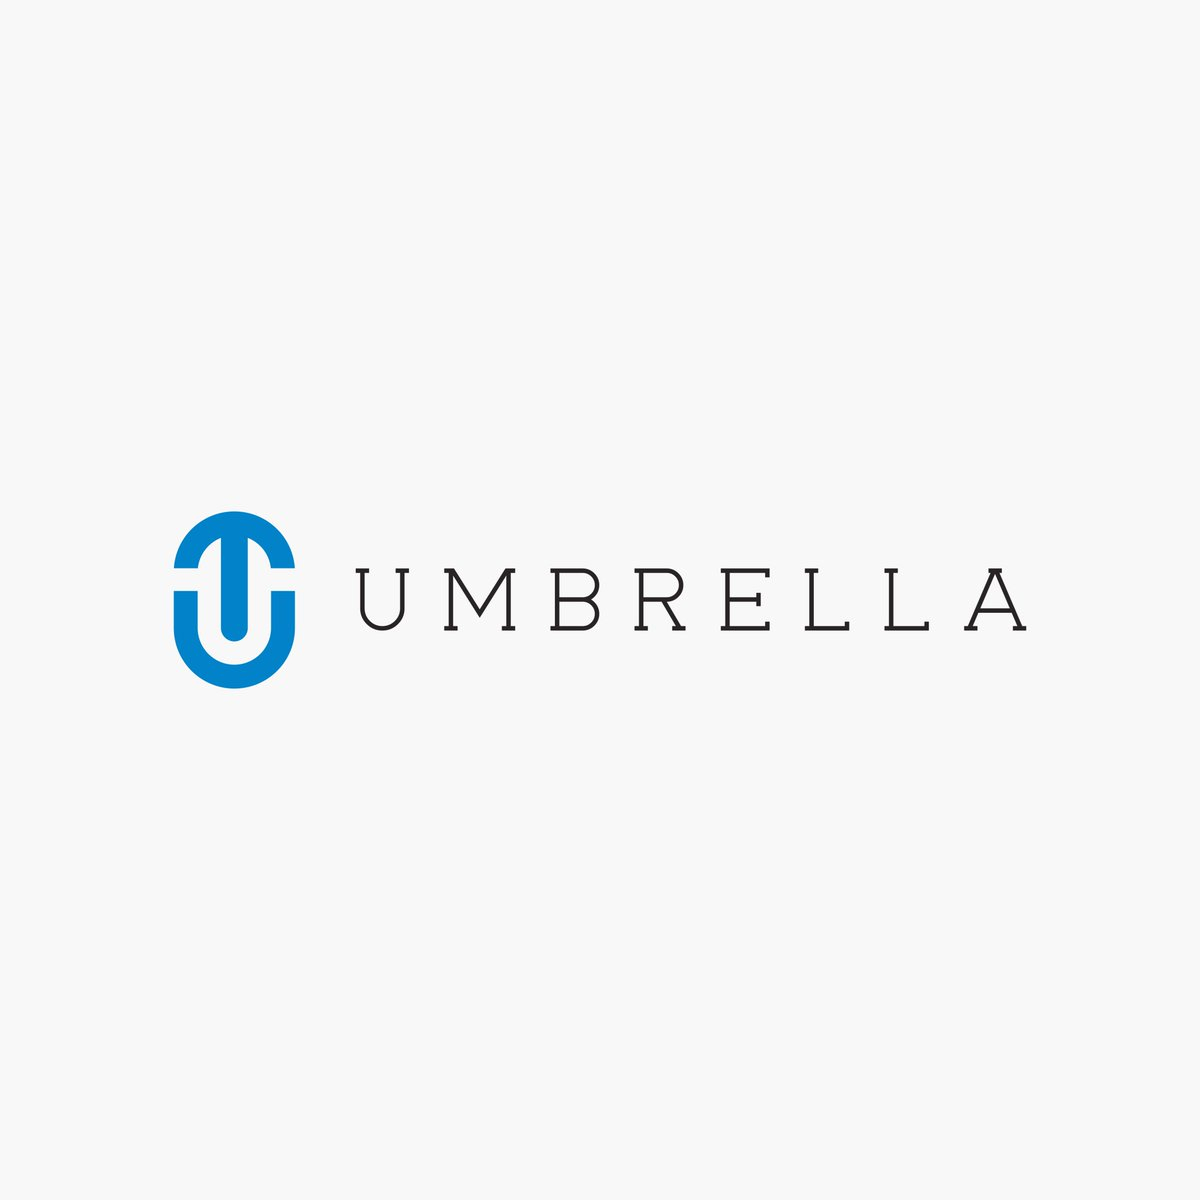 We are happy to announce the launch of the Umbrella identity. A simple yet powerful design for a great business future. #research #gcc https://t.co/231D5P1gmk